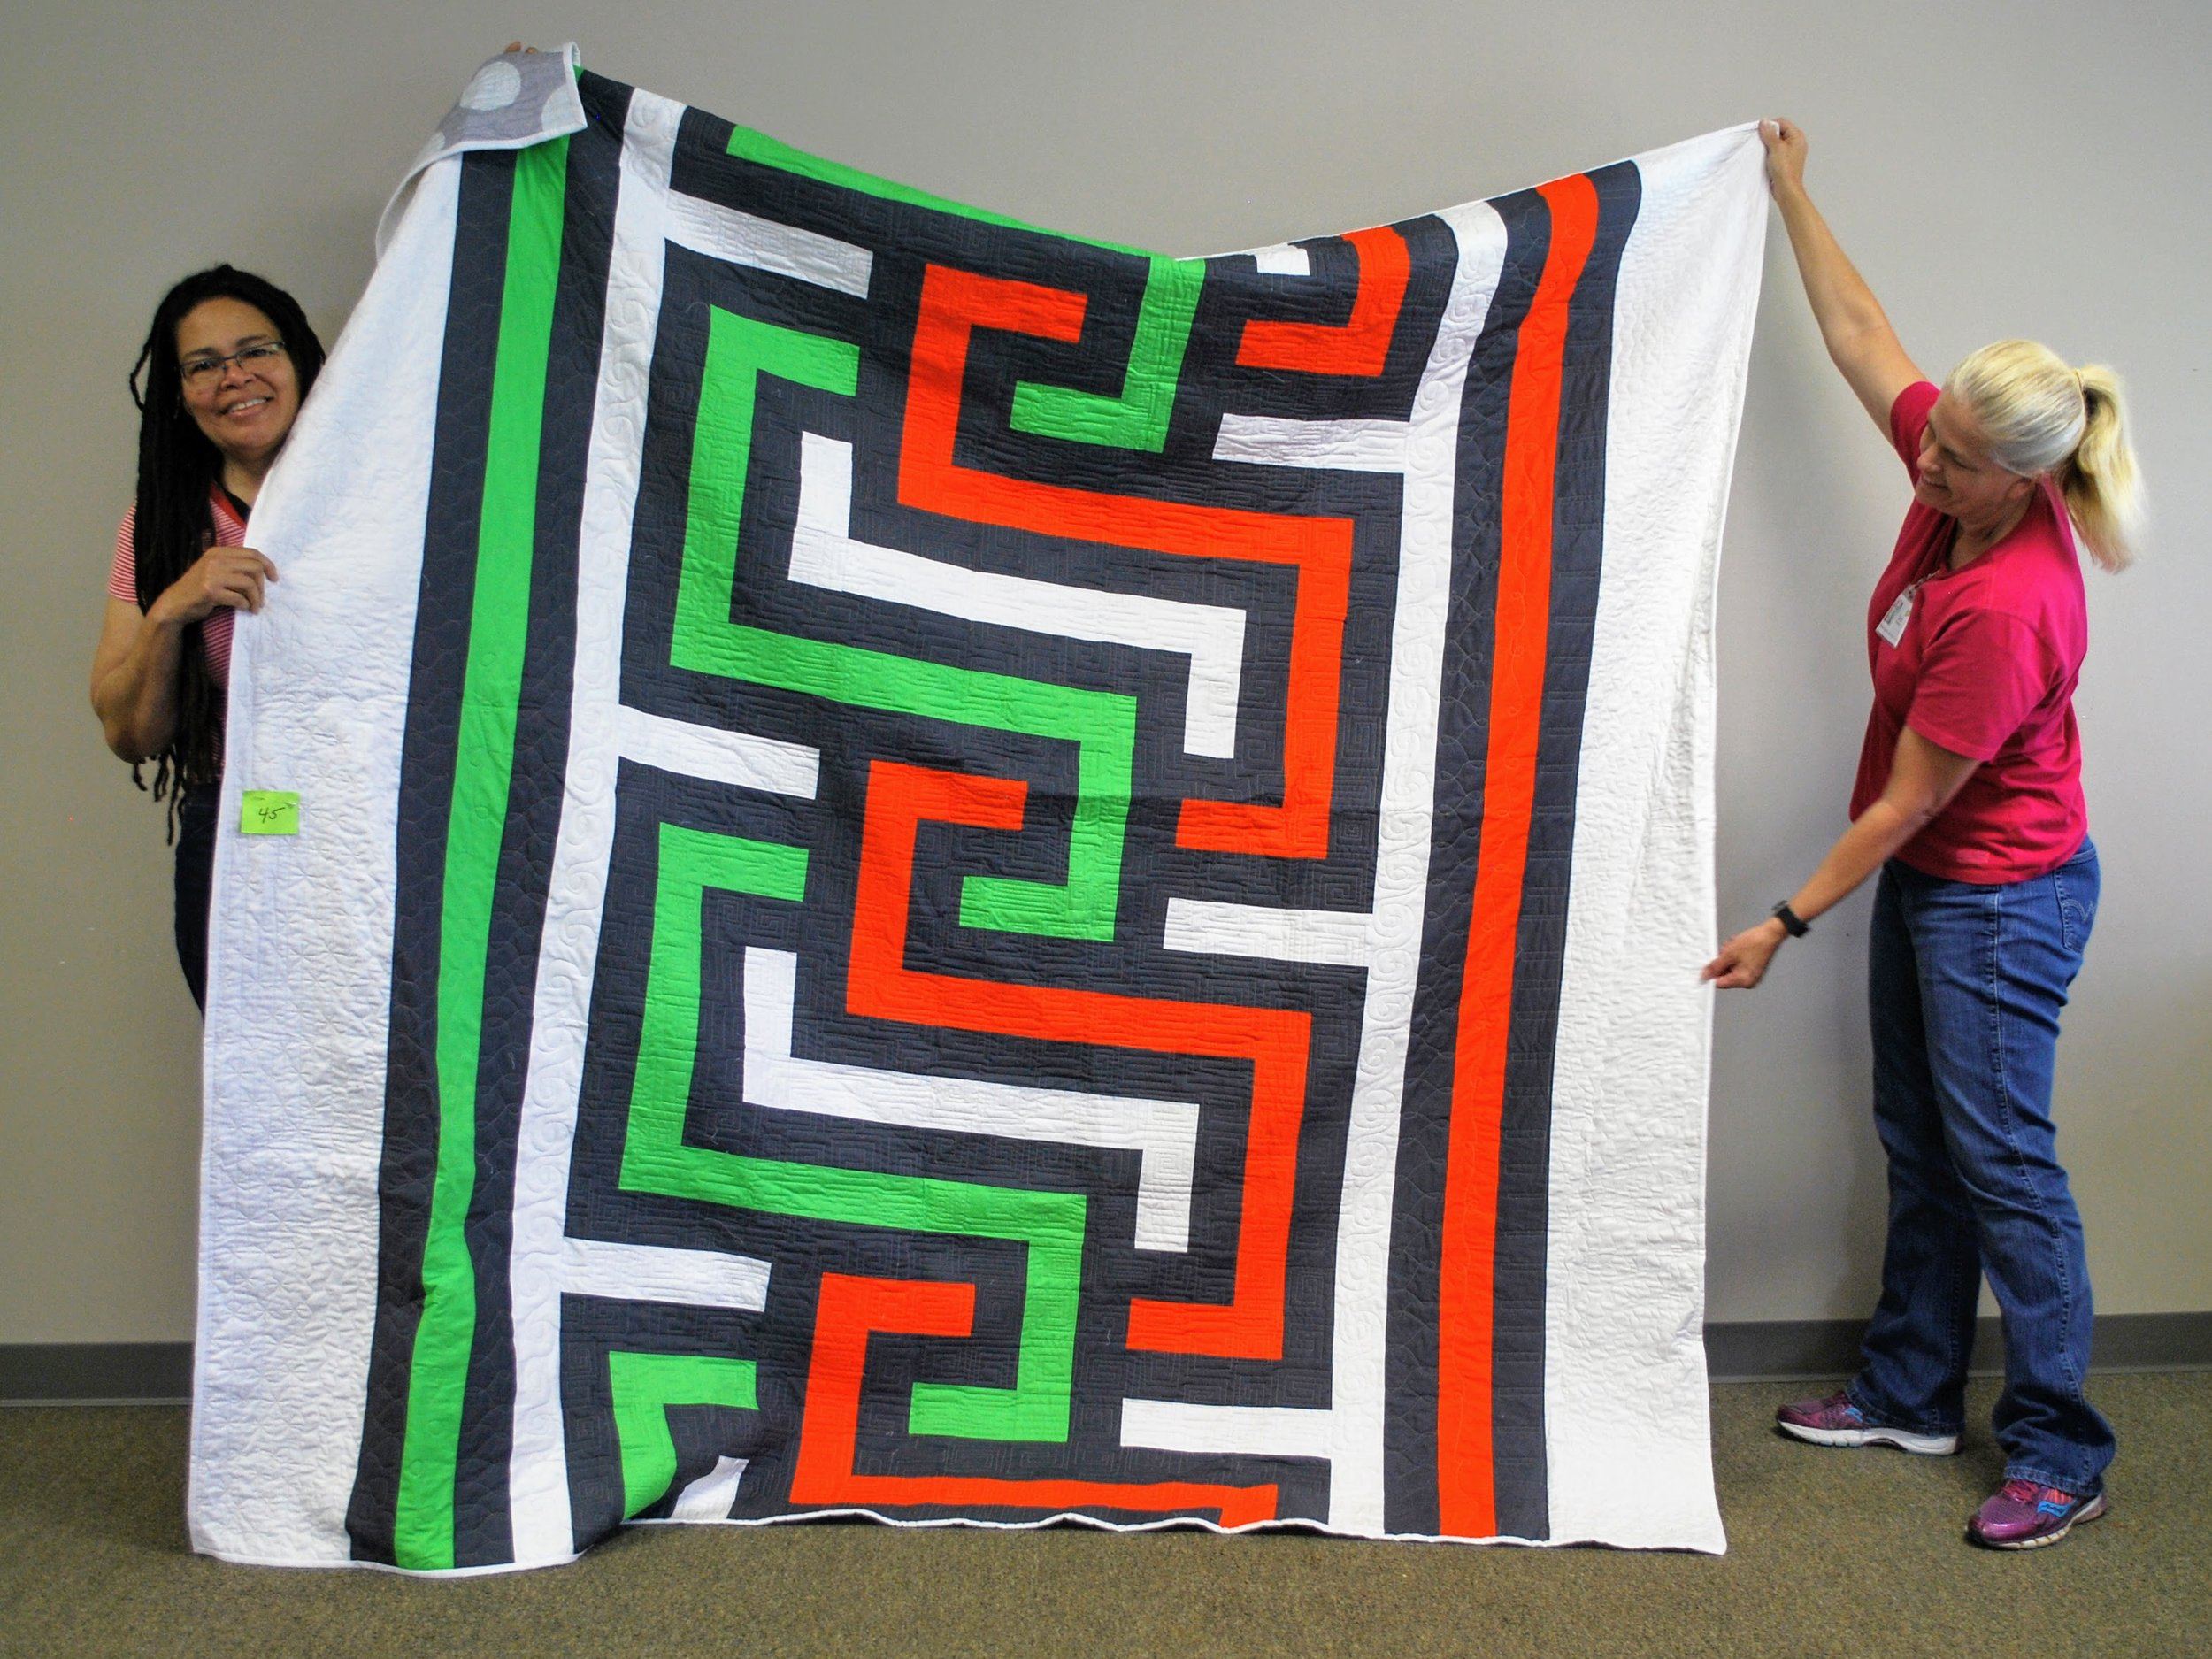 Quilt by Vanessa King (left)